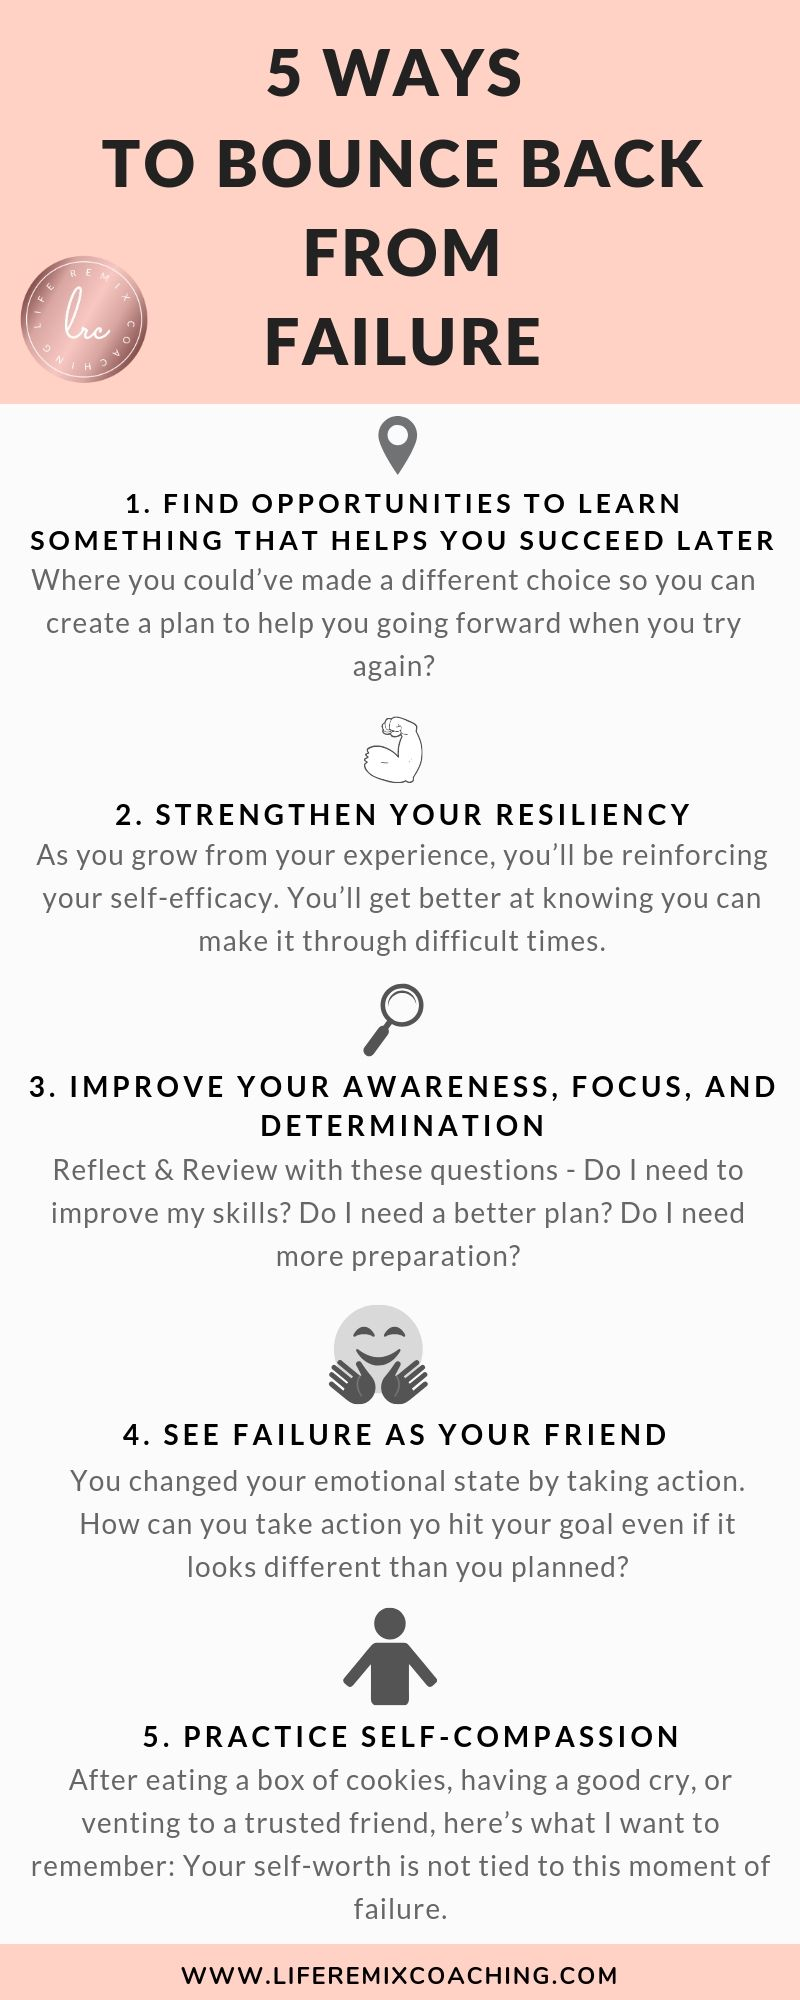 5-ways-to-bounce-back-infographic.jpg